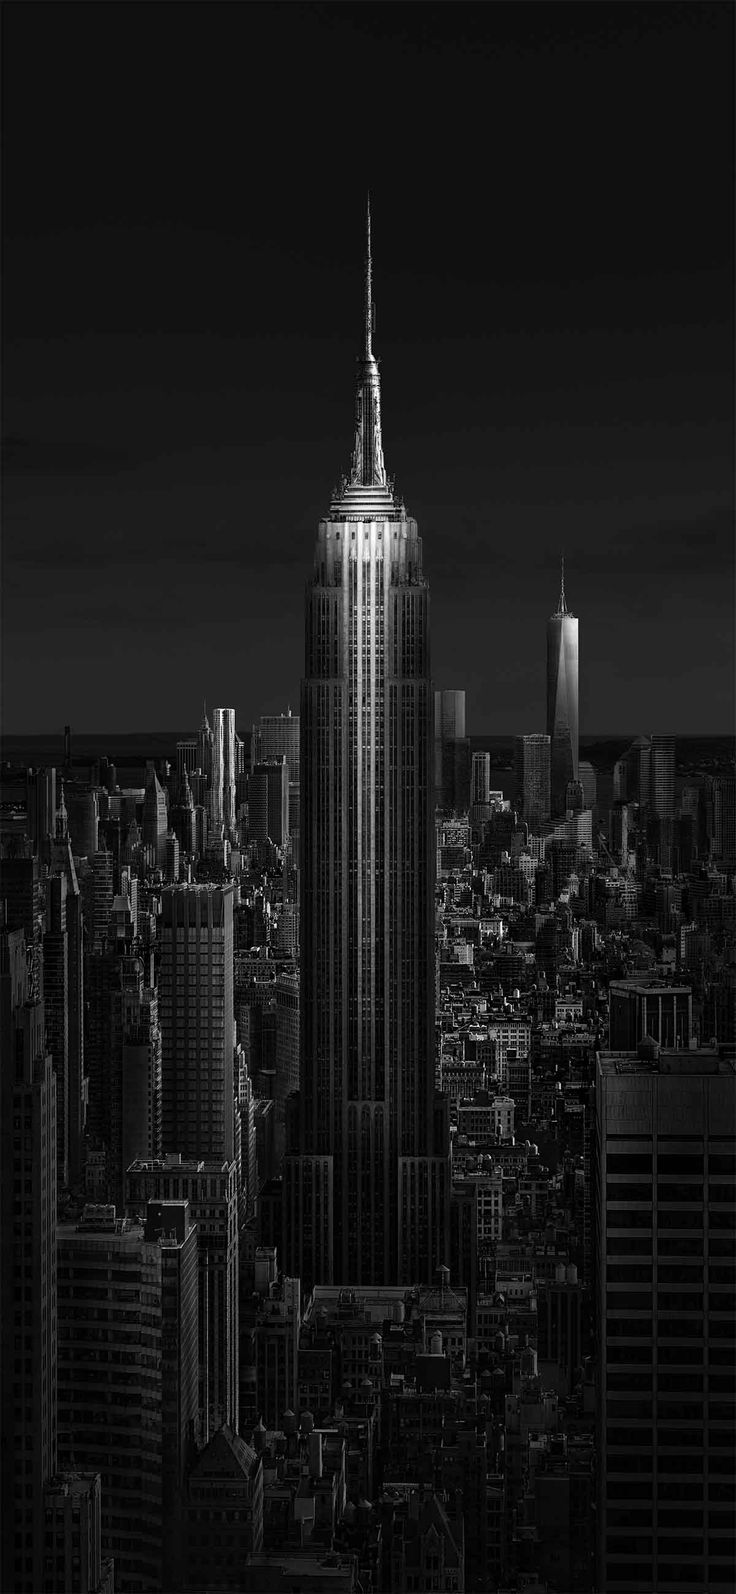 How to Create a Fine Art Photograph of Empire State Building - In this tutorial I will show how to create a fine art photograph of Empire State Building, the symbol of New York City. This is the way I see it. I use black and white photography to express myself because this suits my artistic sensibility